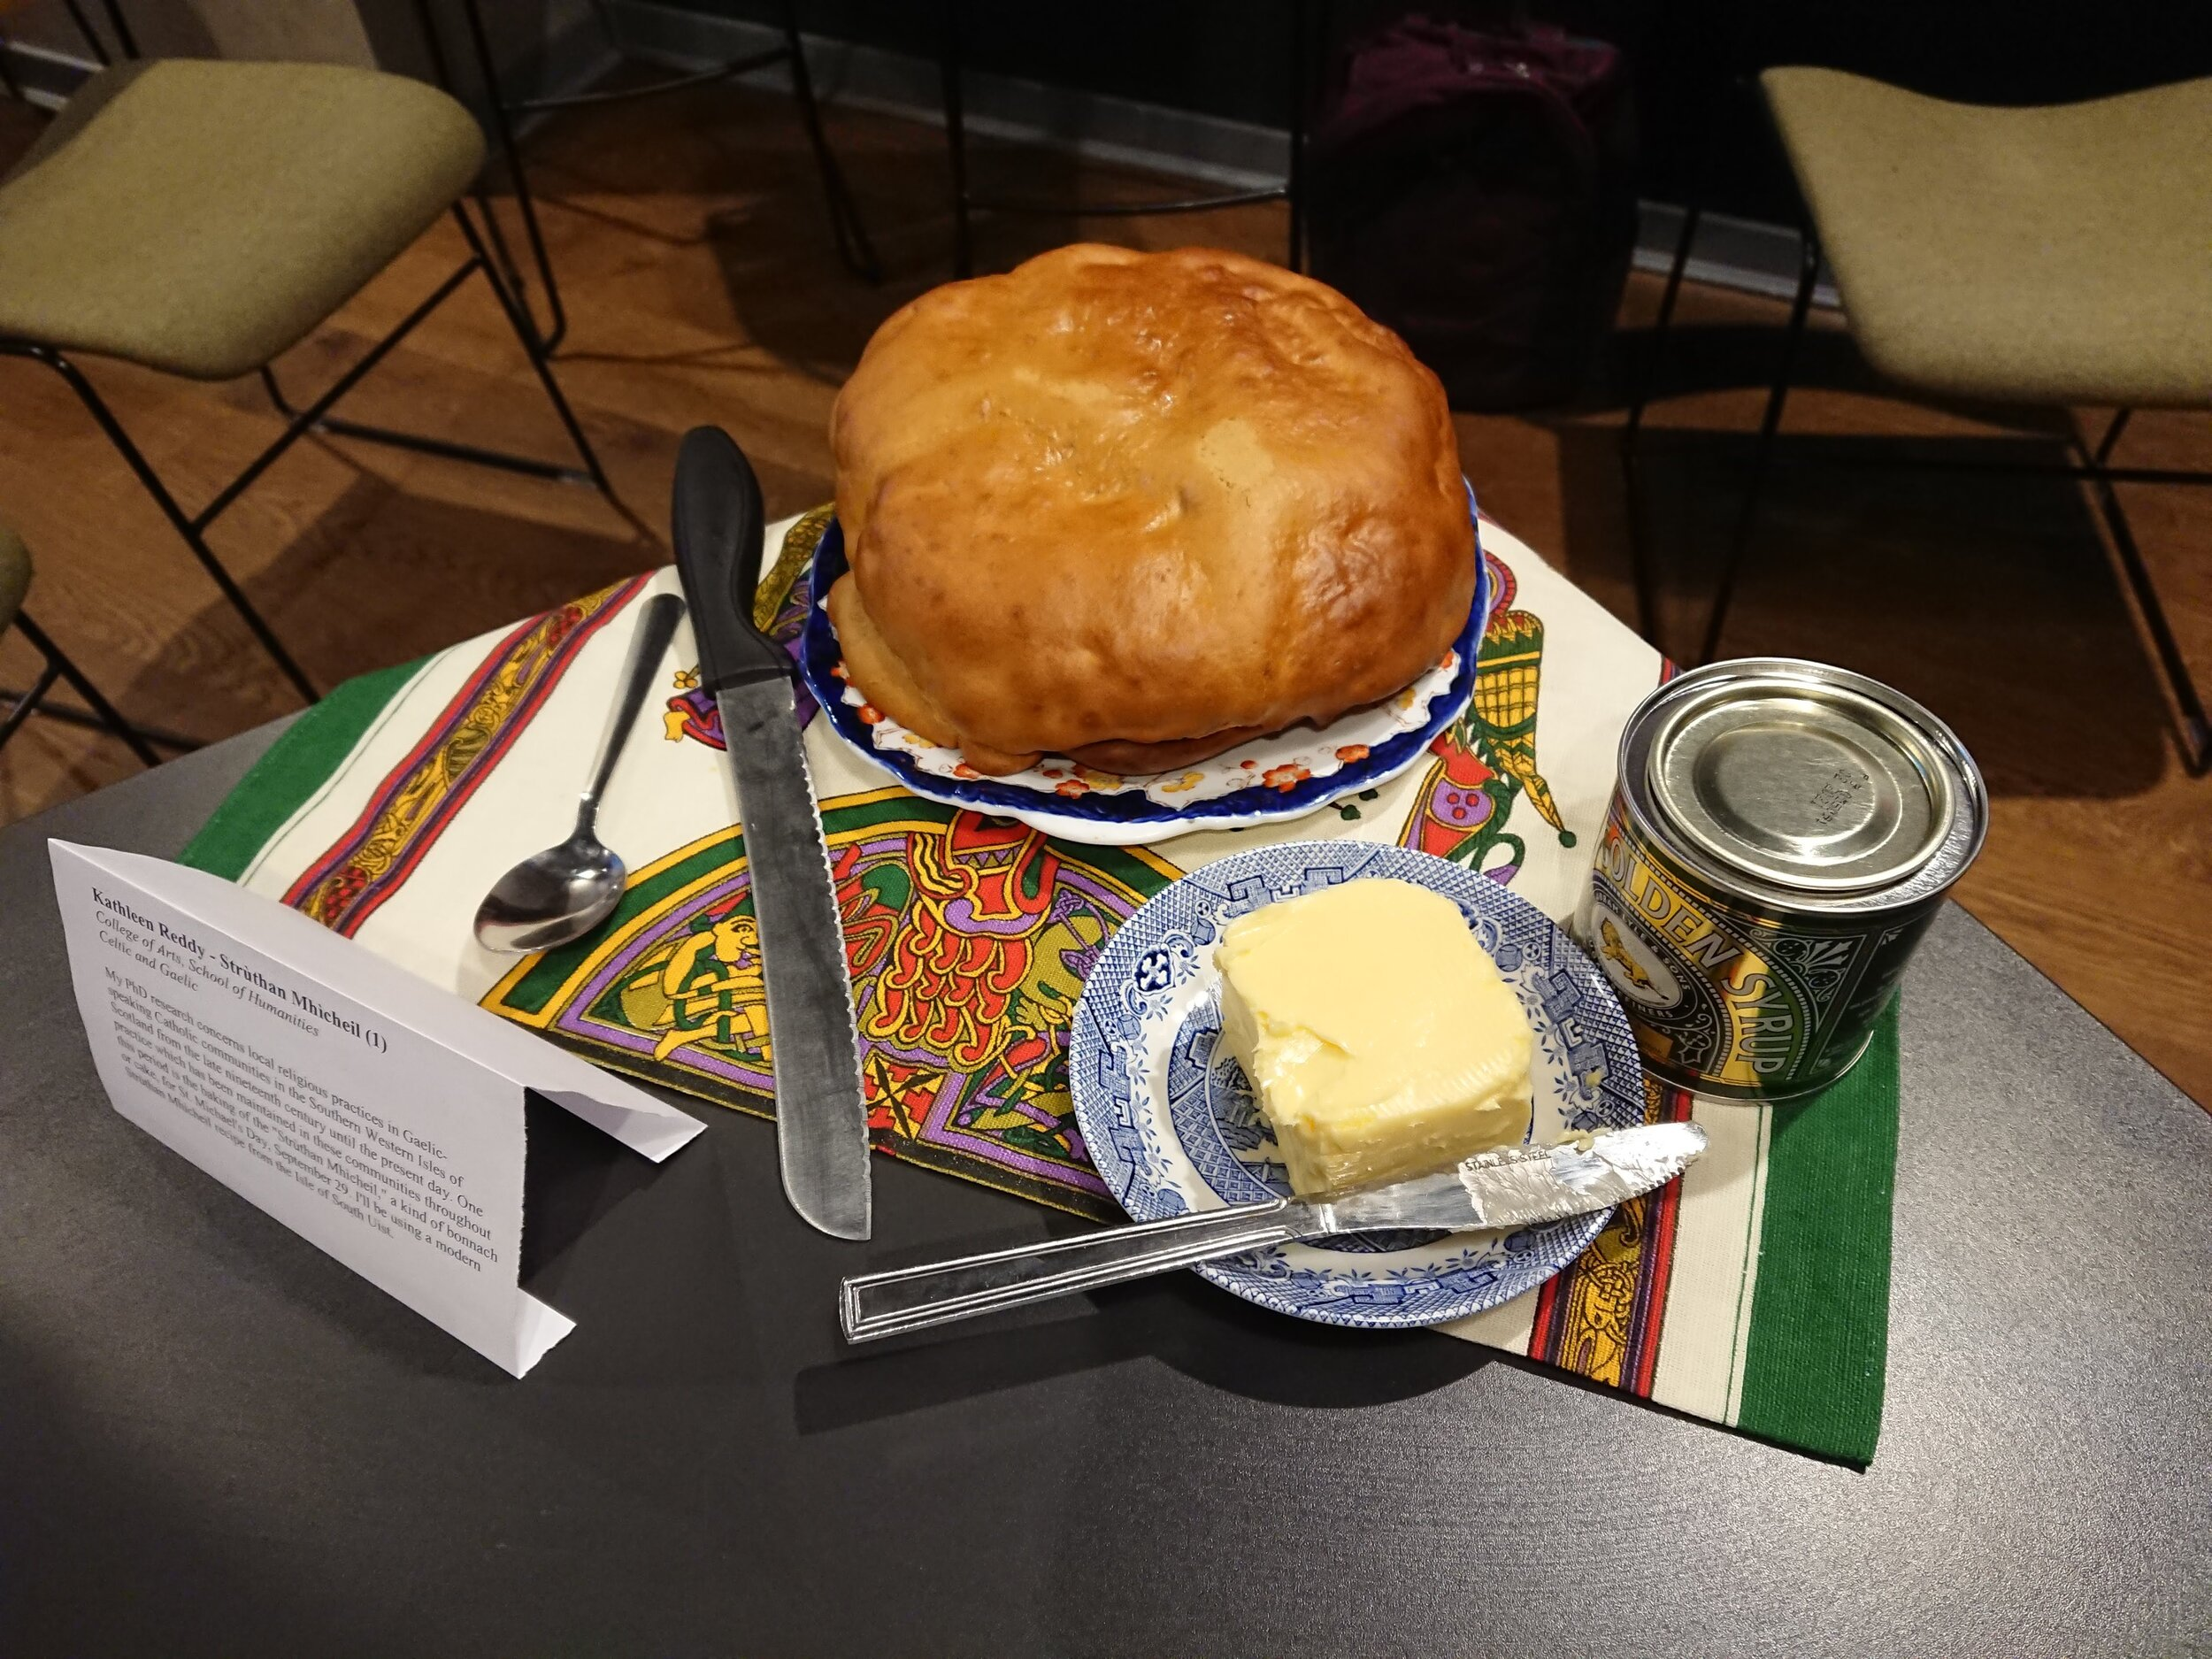 Strùthan Mhìcheil with butter and syrup